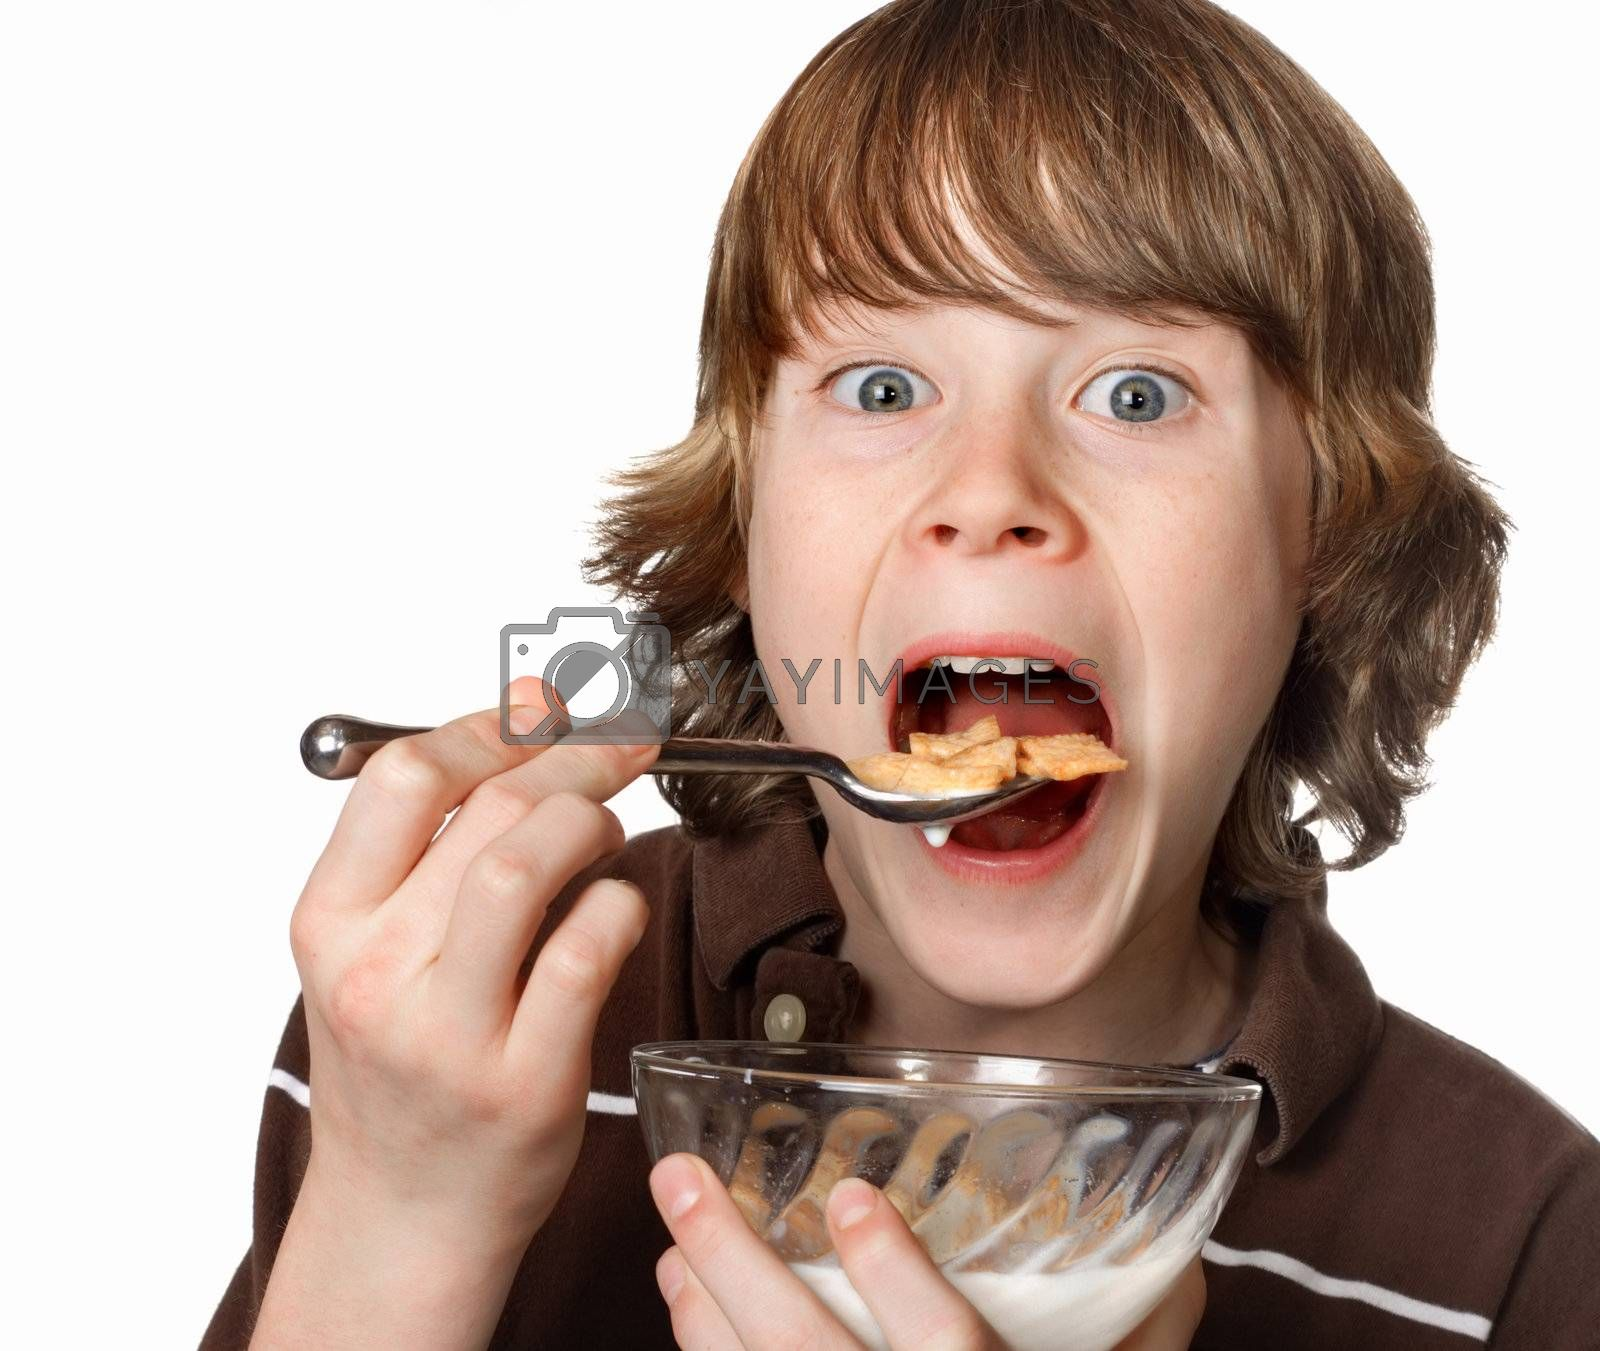 A boy opens his mouth wide for a spoonful of cereal